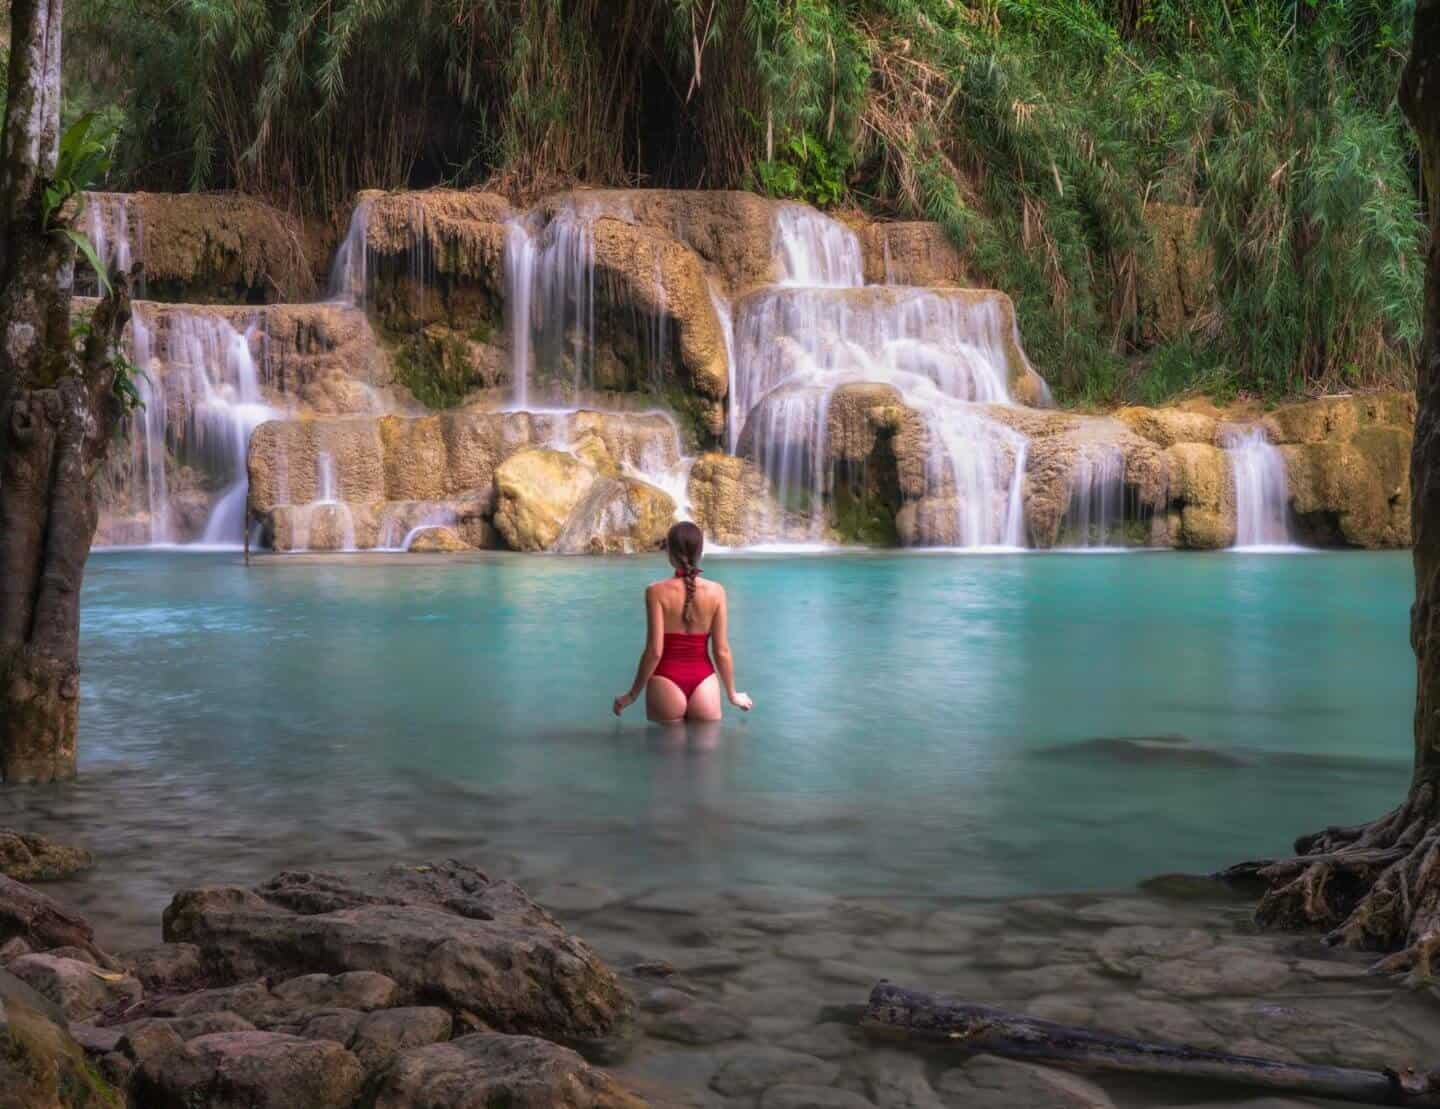 Travels of Sophie wades through the stunning turquoise waters of Kuang Si Falls.